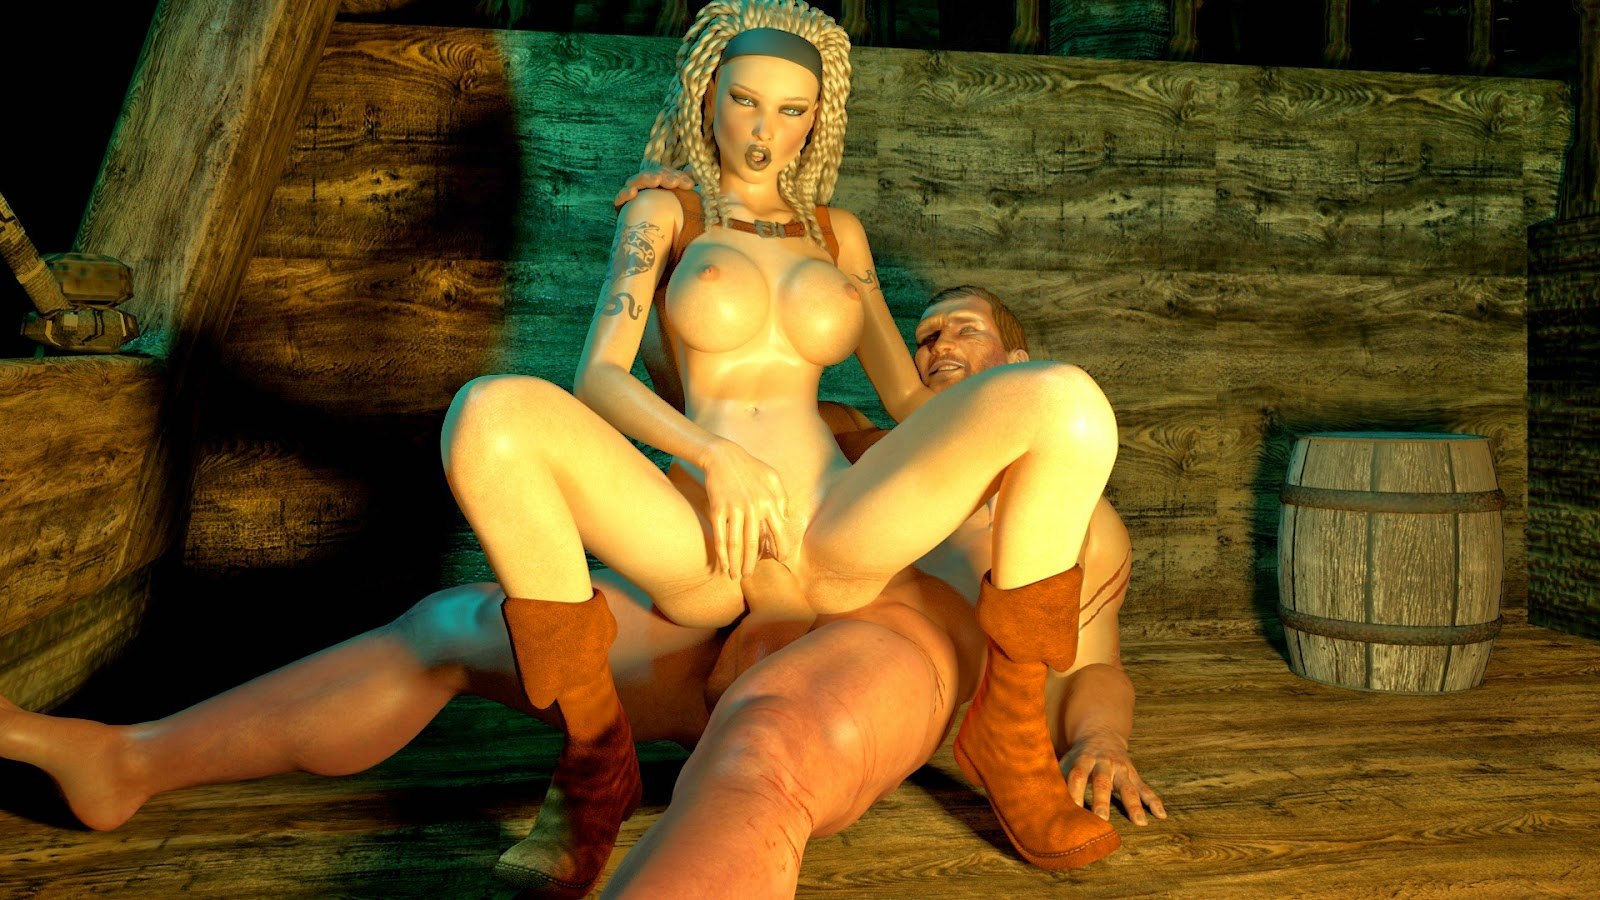 Sexy nude 3d game download hentia streaming